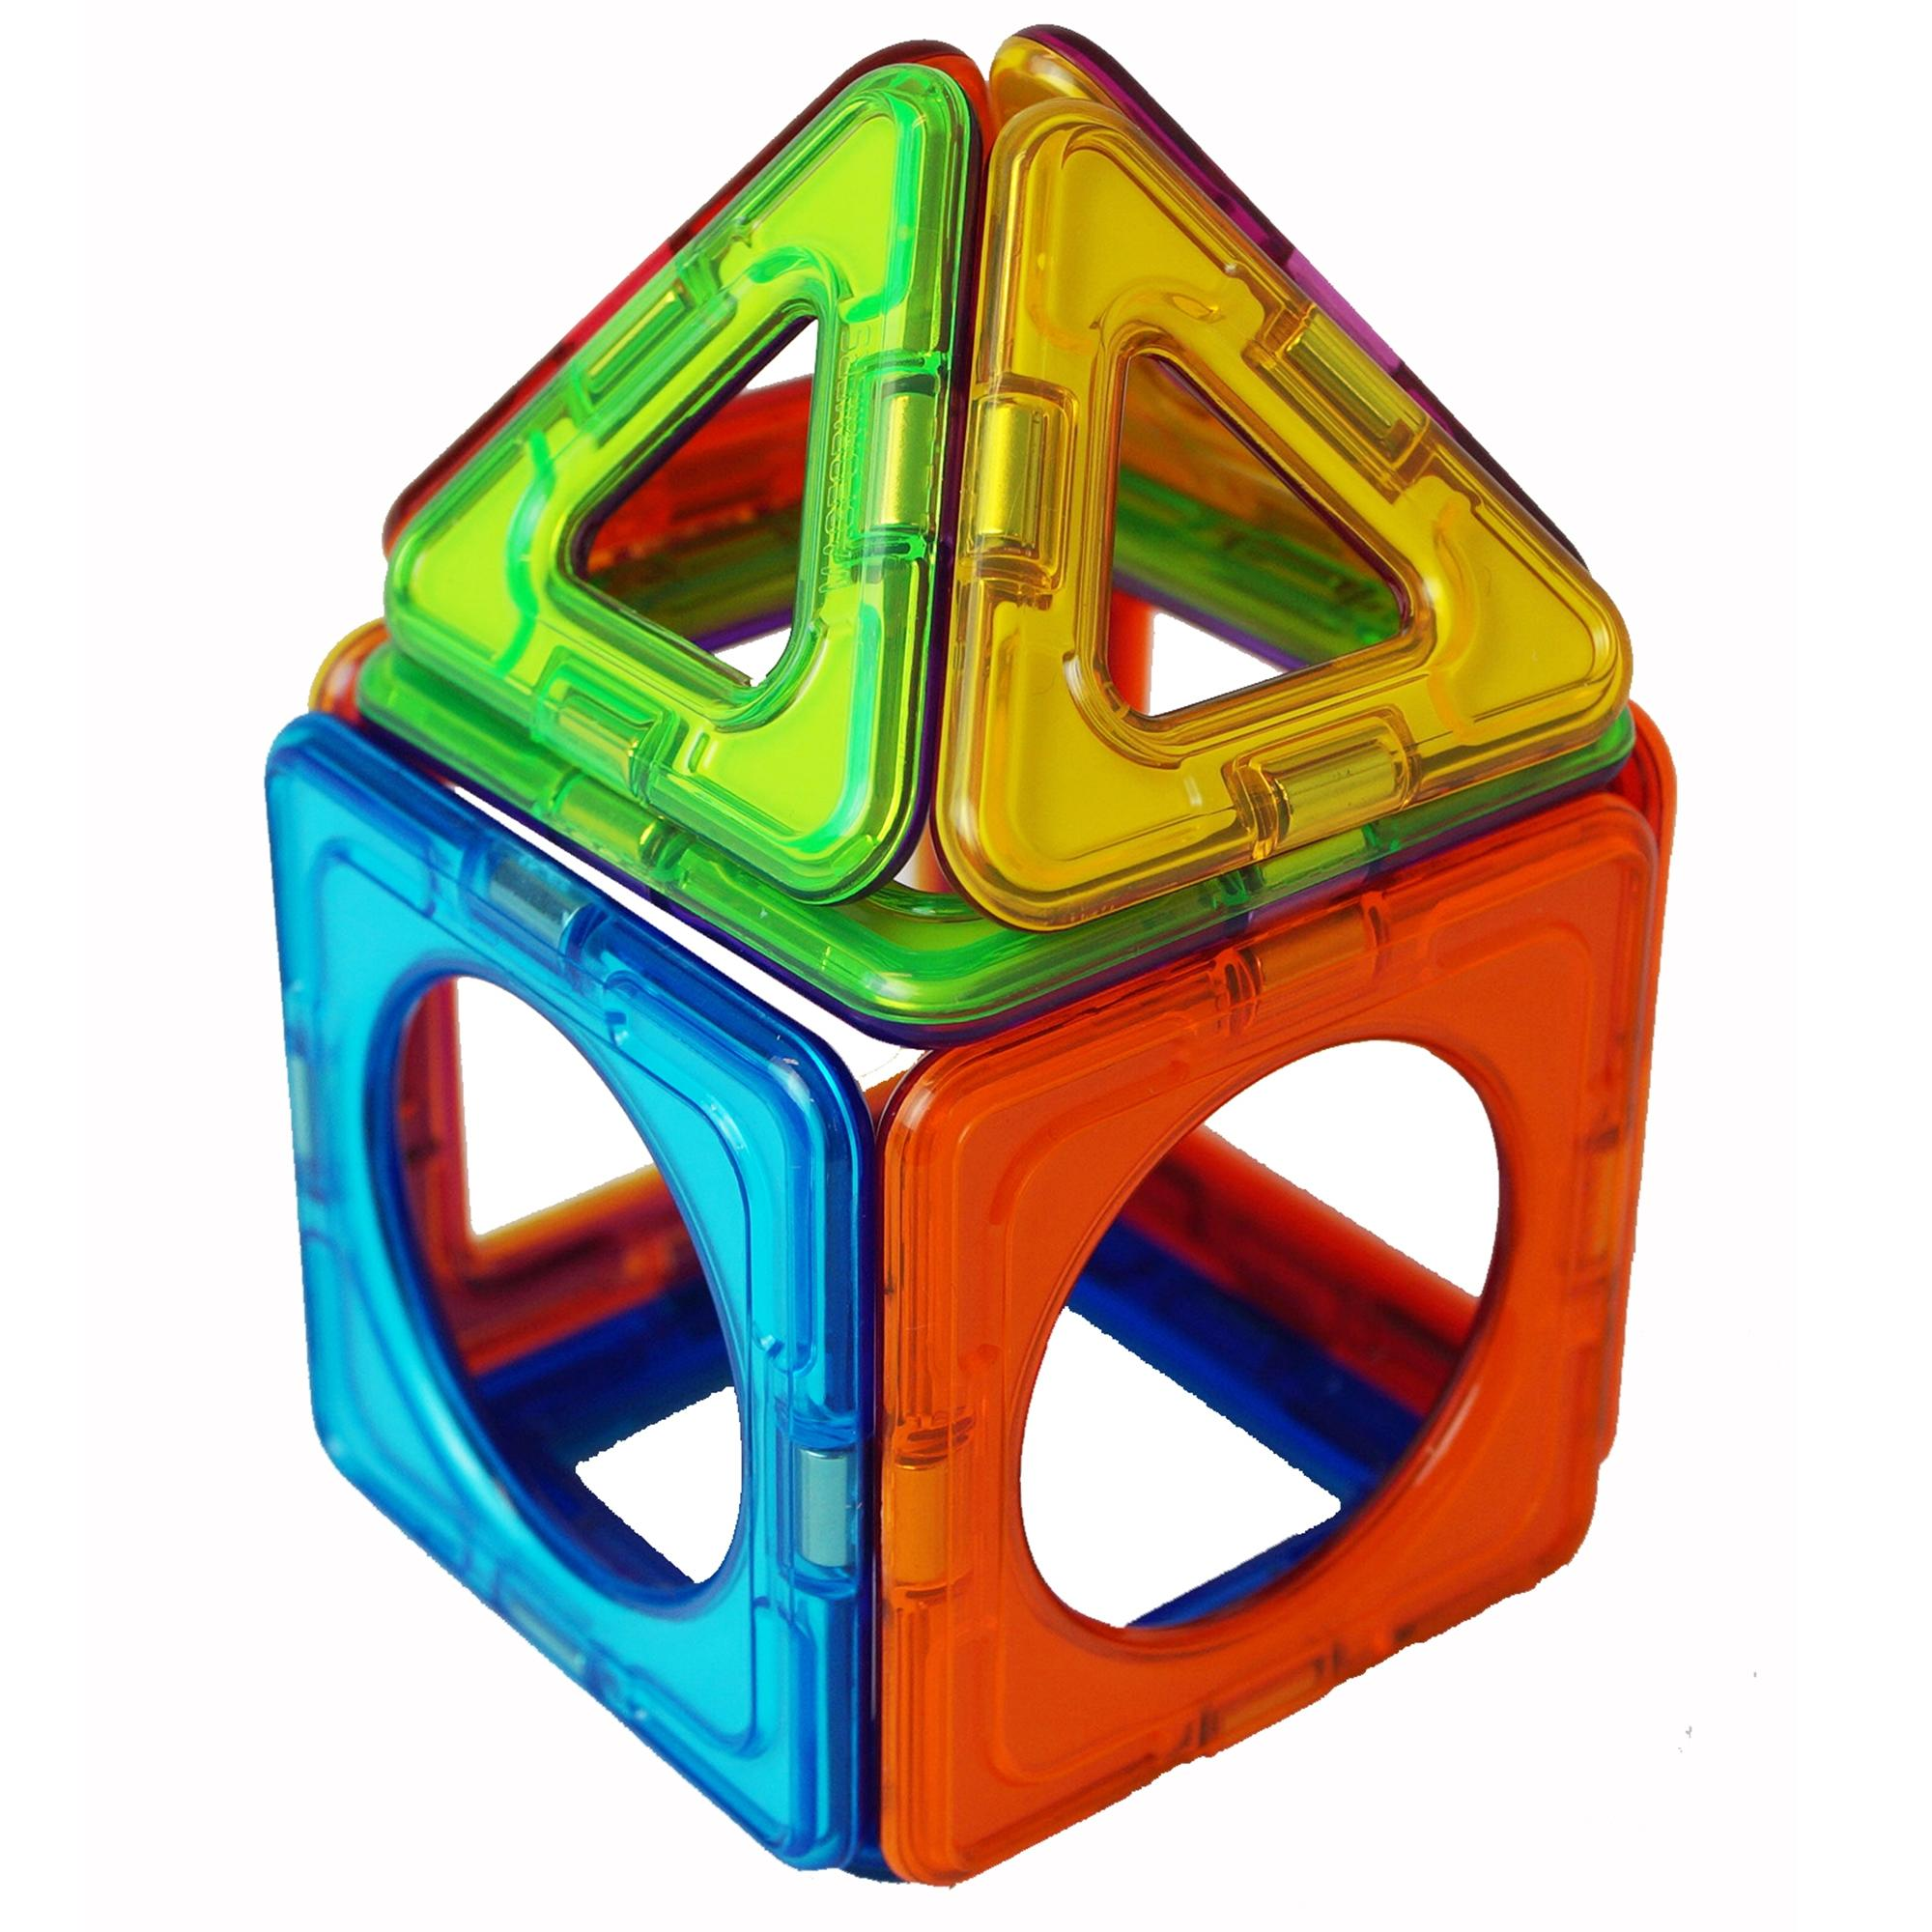 Colourful shape made from Magformers pieces